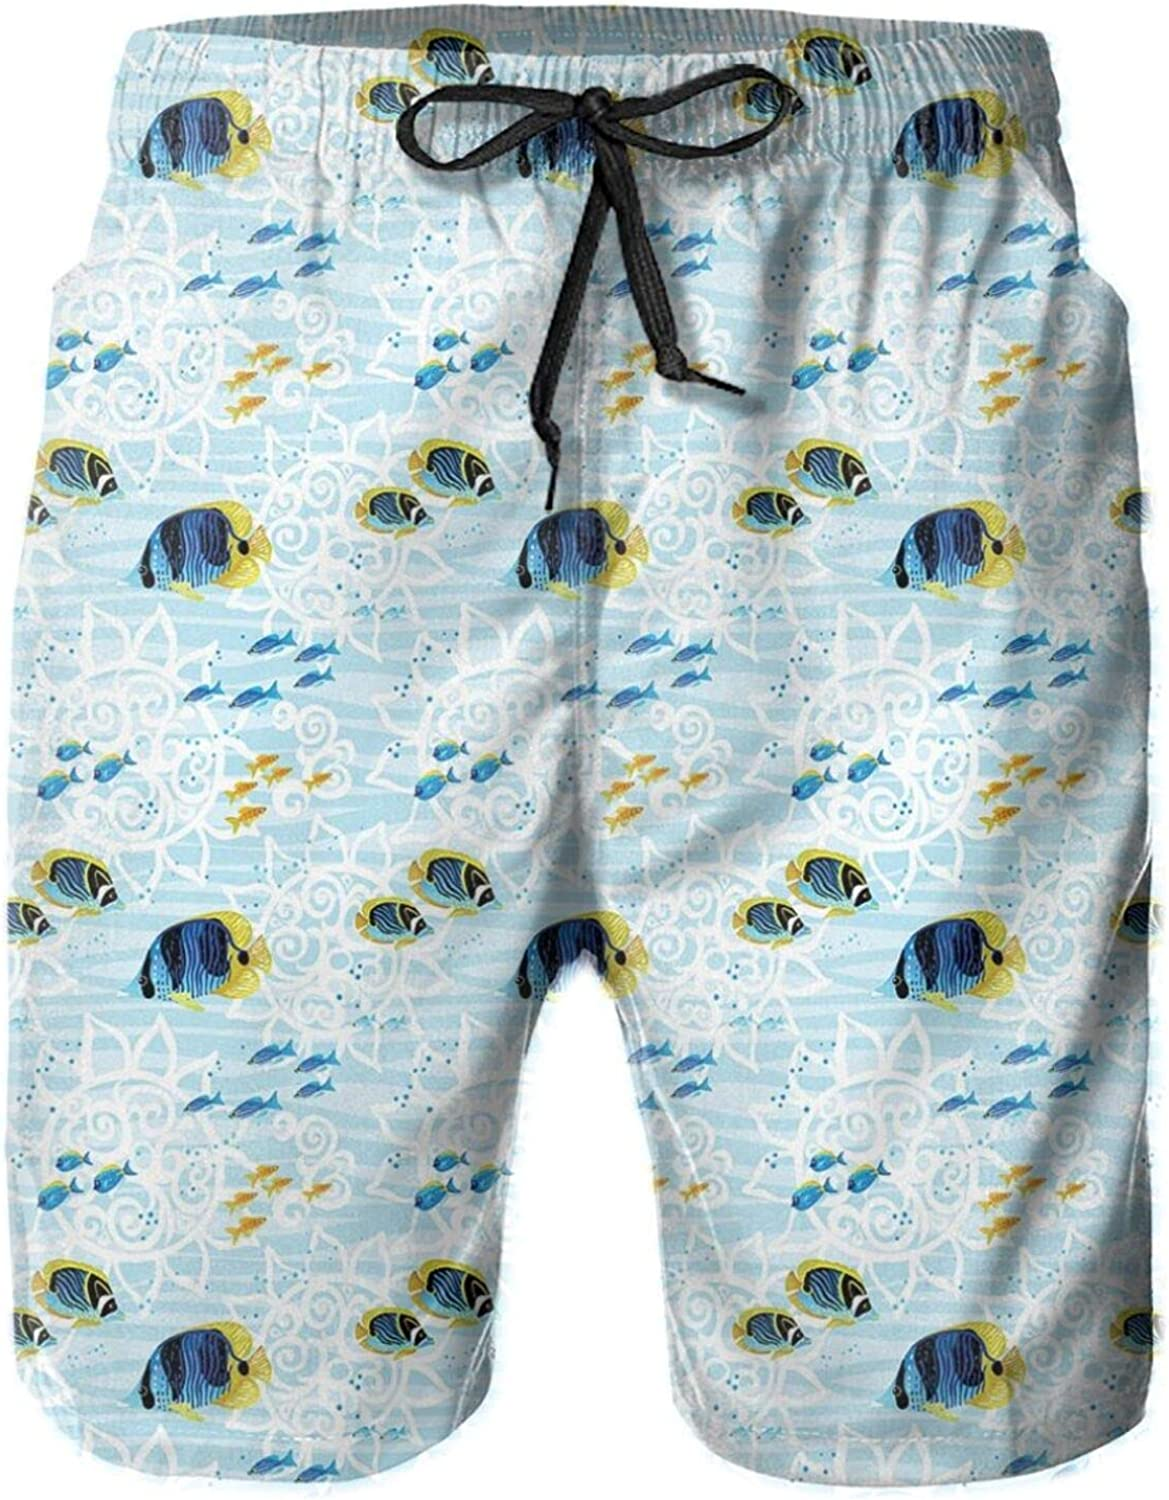 Sea Life Pattern Tropical Fishes On Pale Colored Floral Background Swimming Trunks for Men Beach Shorts Casual Style,XL